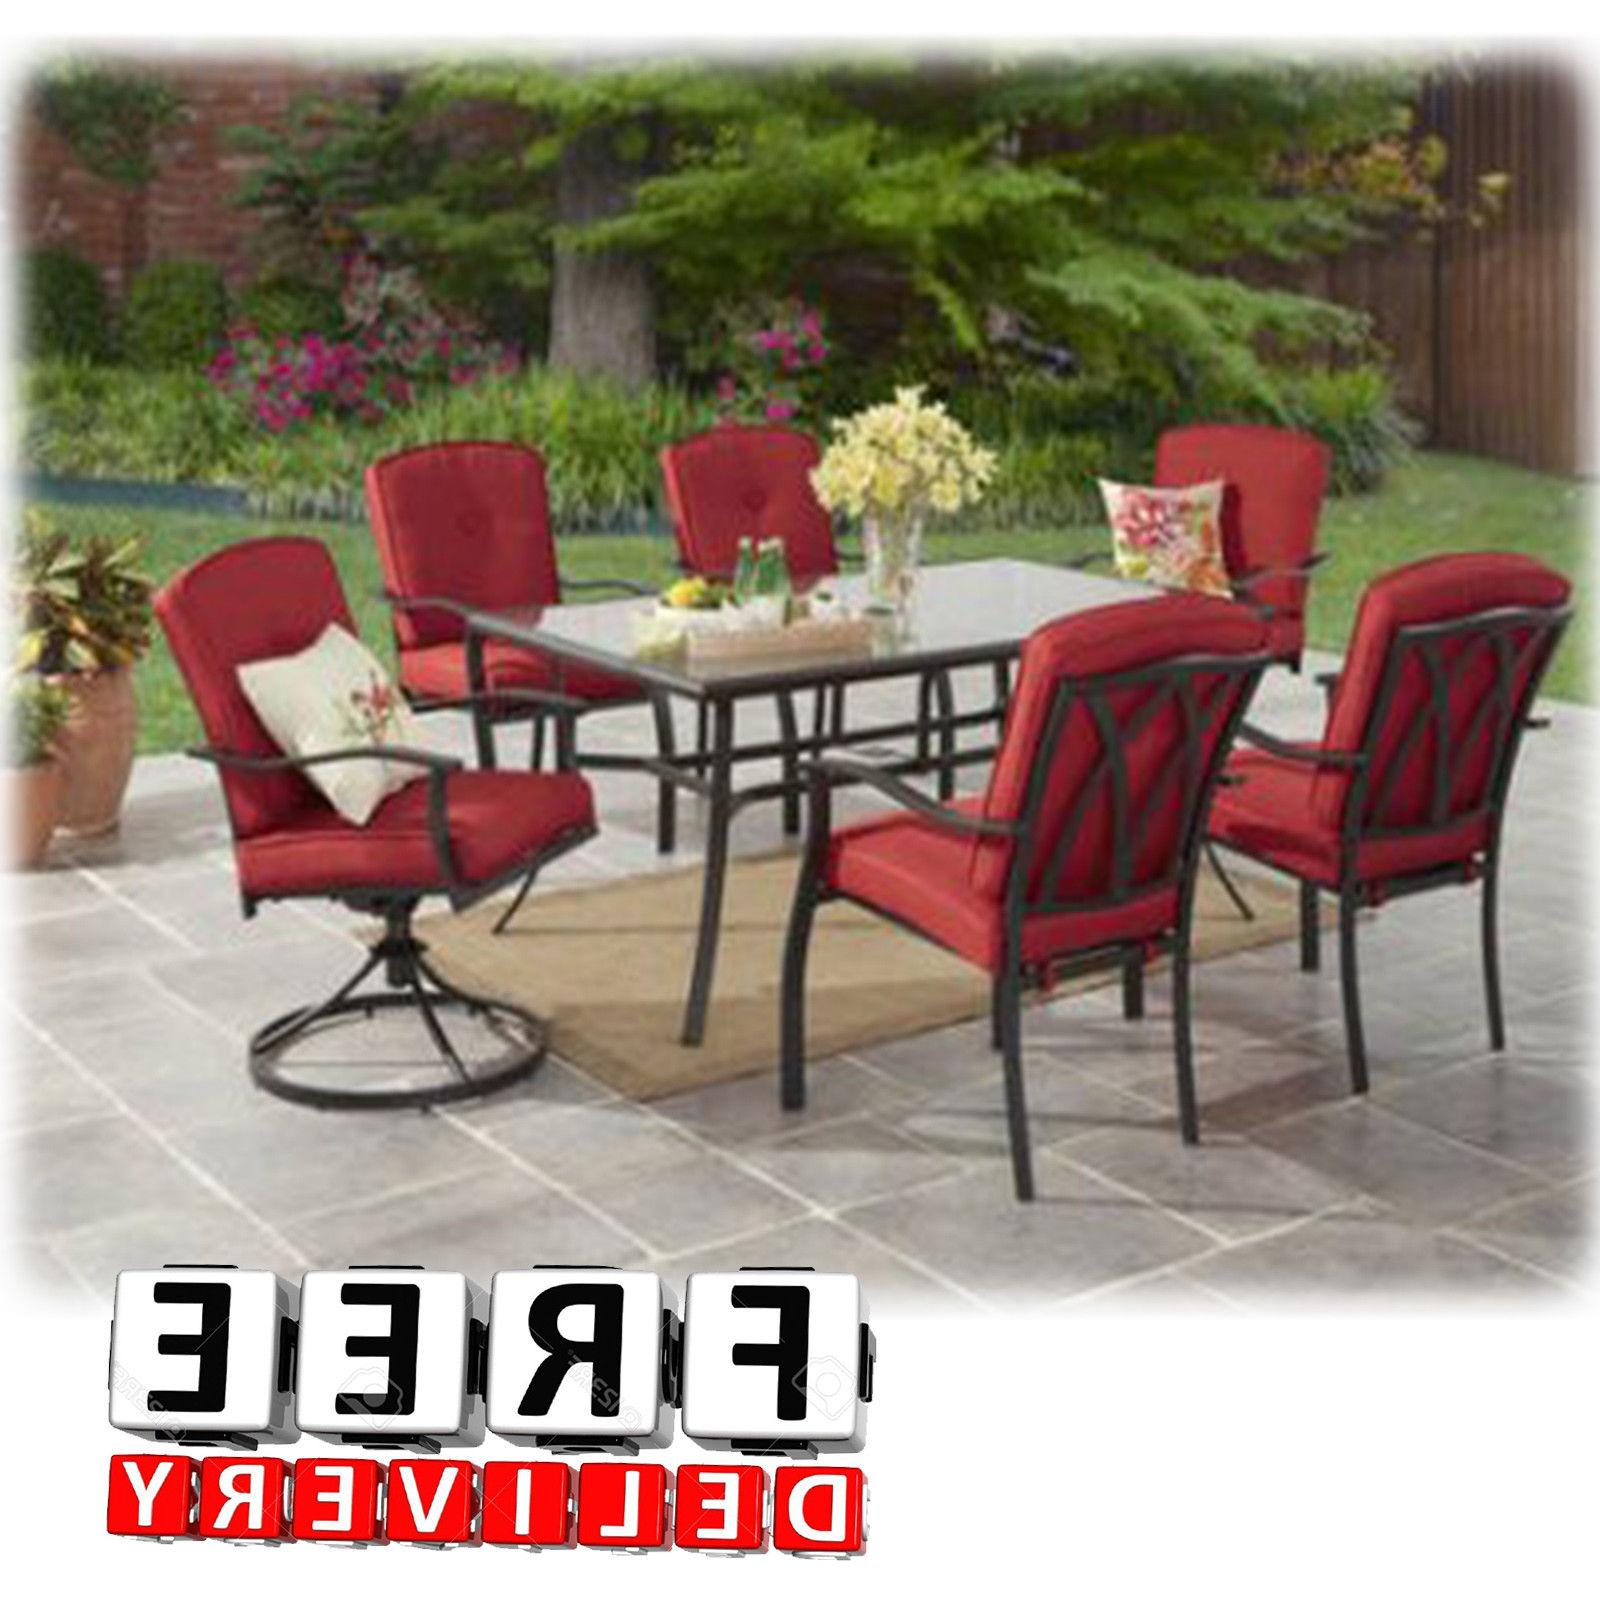 Outdoor Patio Dining Furniture Set 7 Piece Table Chairs Lawn